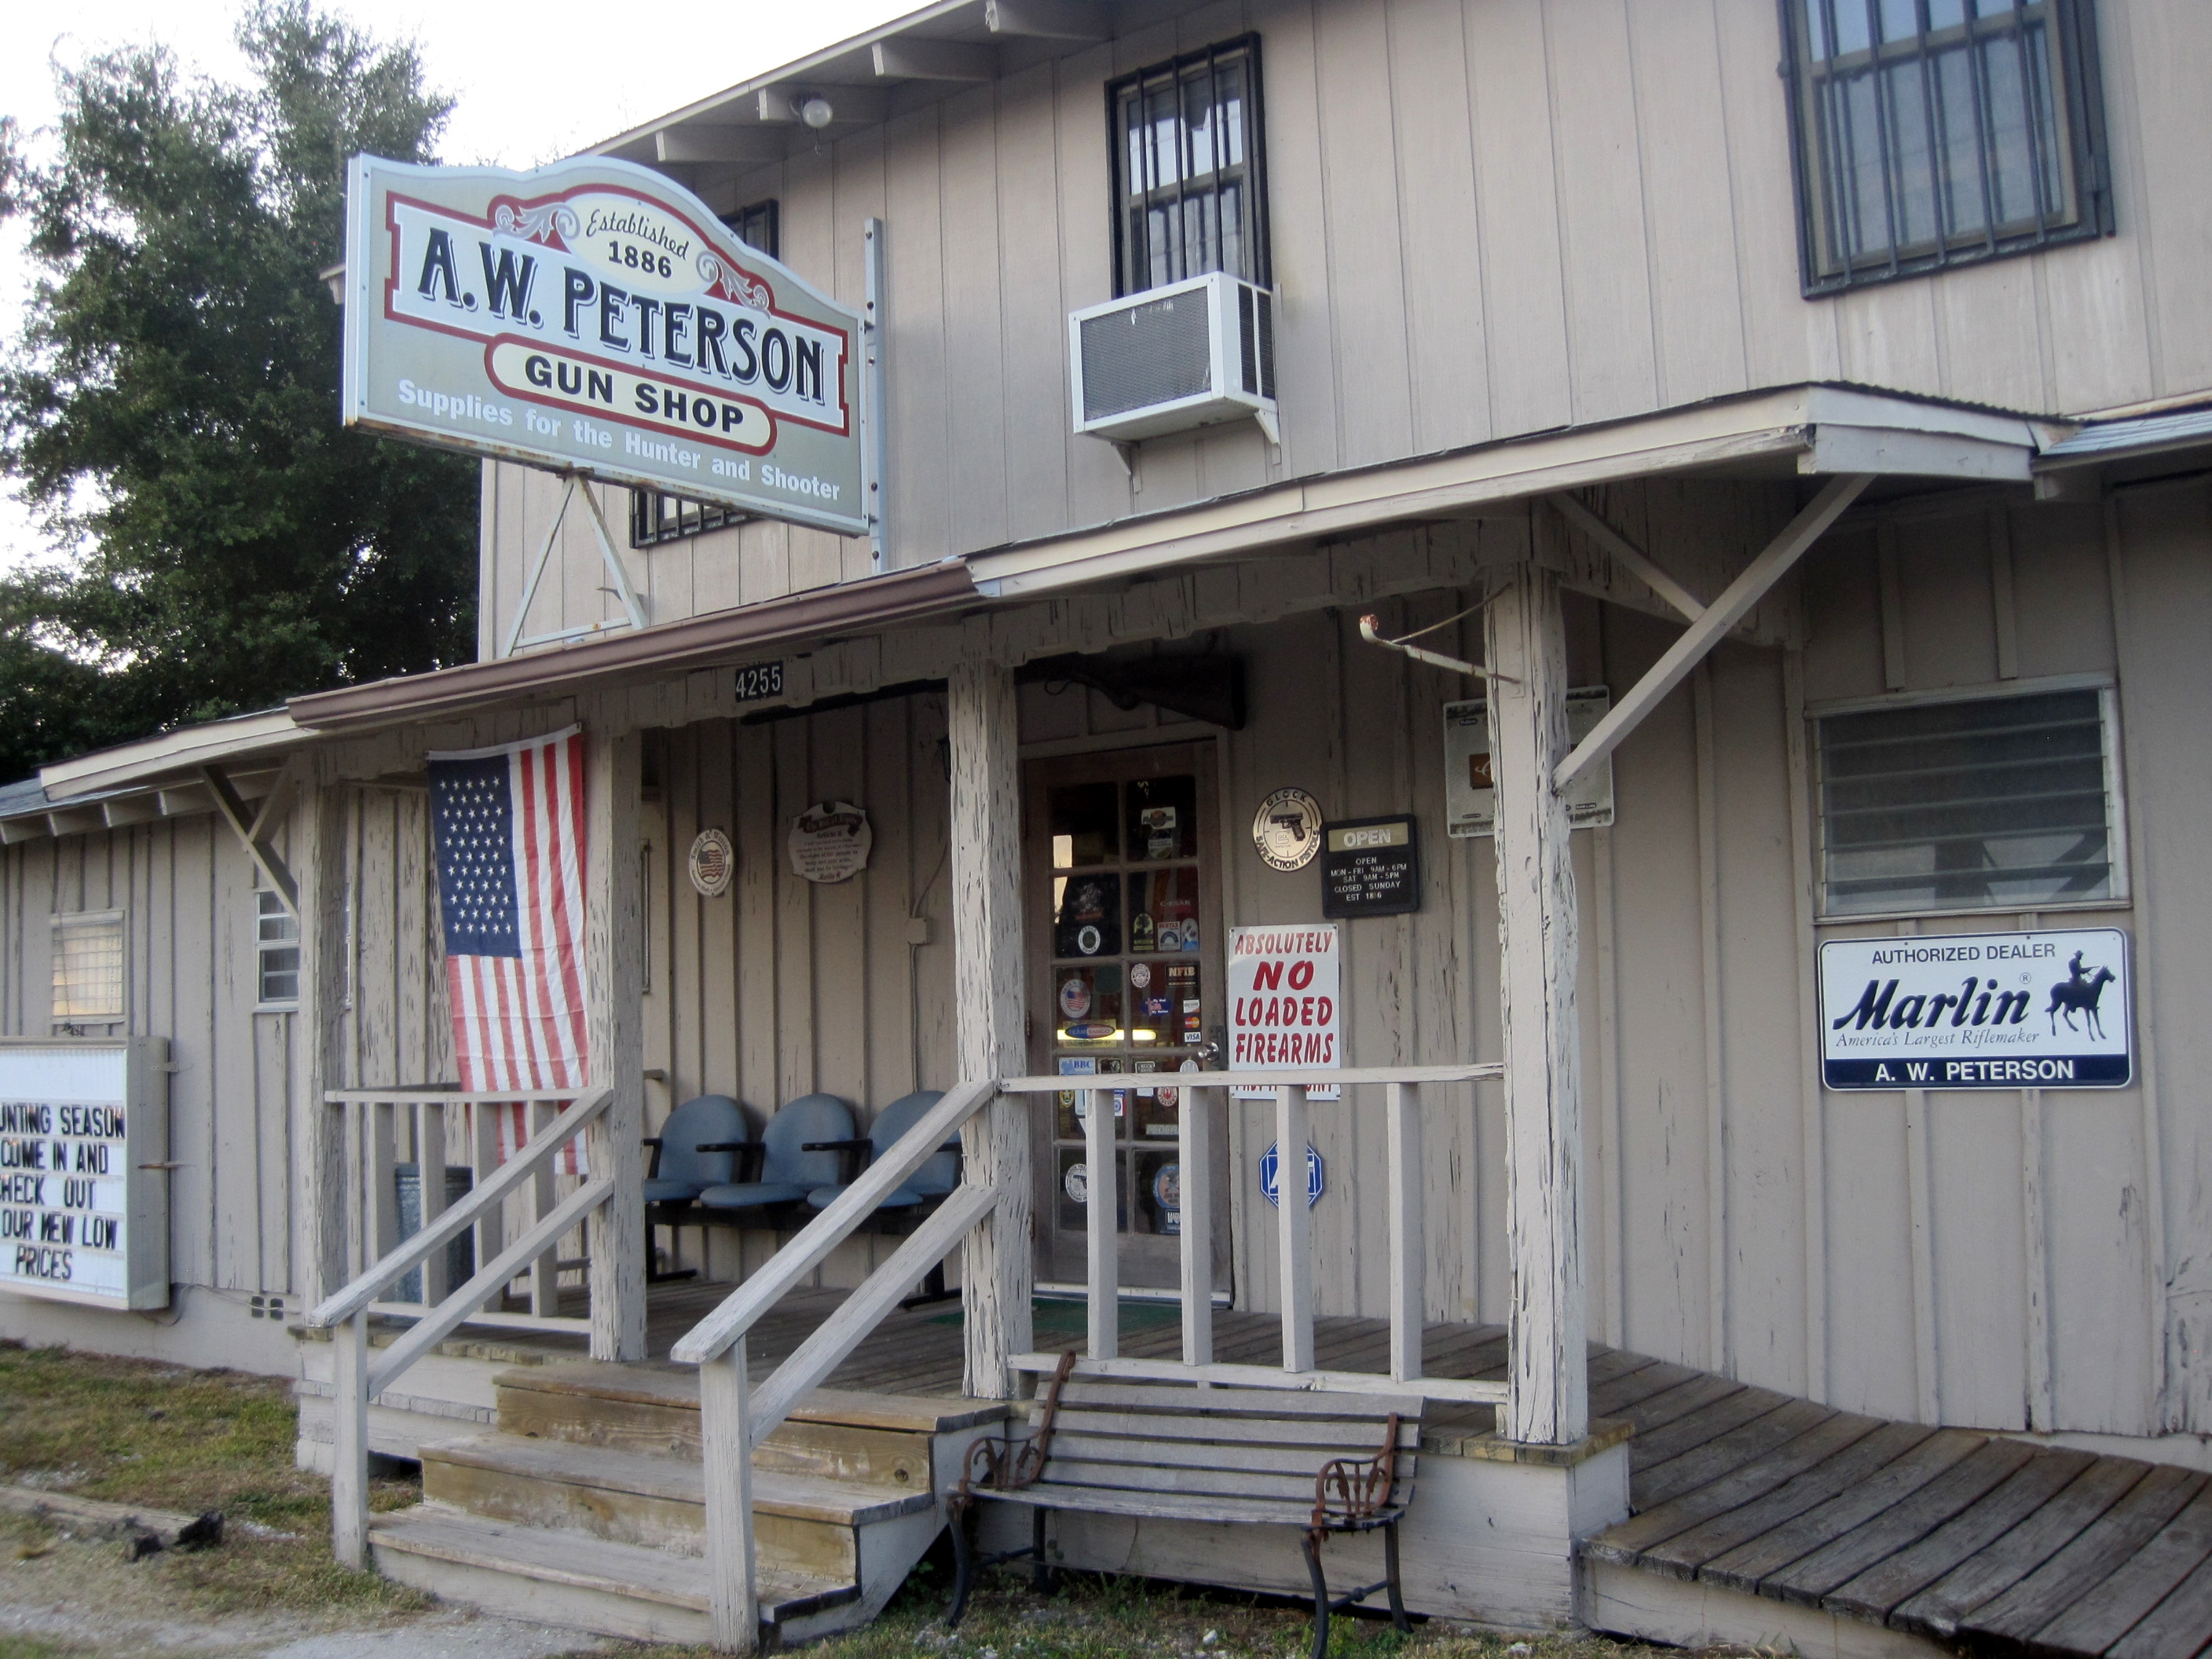 Disabled customers appreciate a ramp and friendly service a welcoming front porch for all